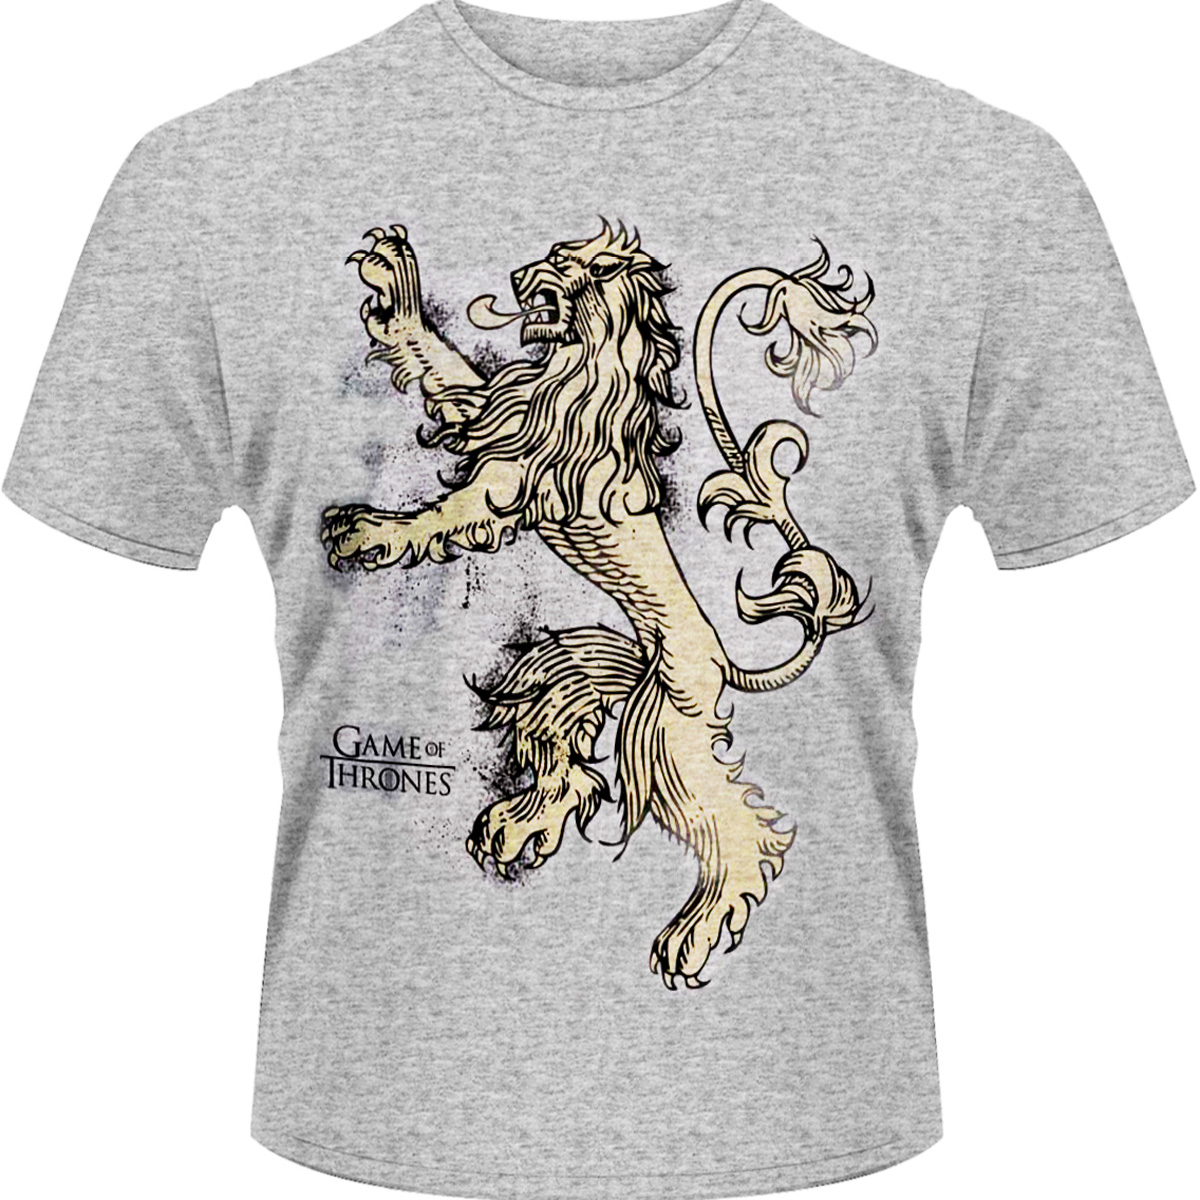 Lion - T-shirt =game of Thrones= - Merchandise - PHDM - 0803341452664 -